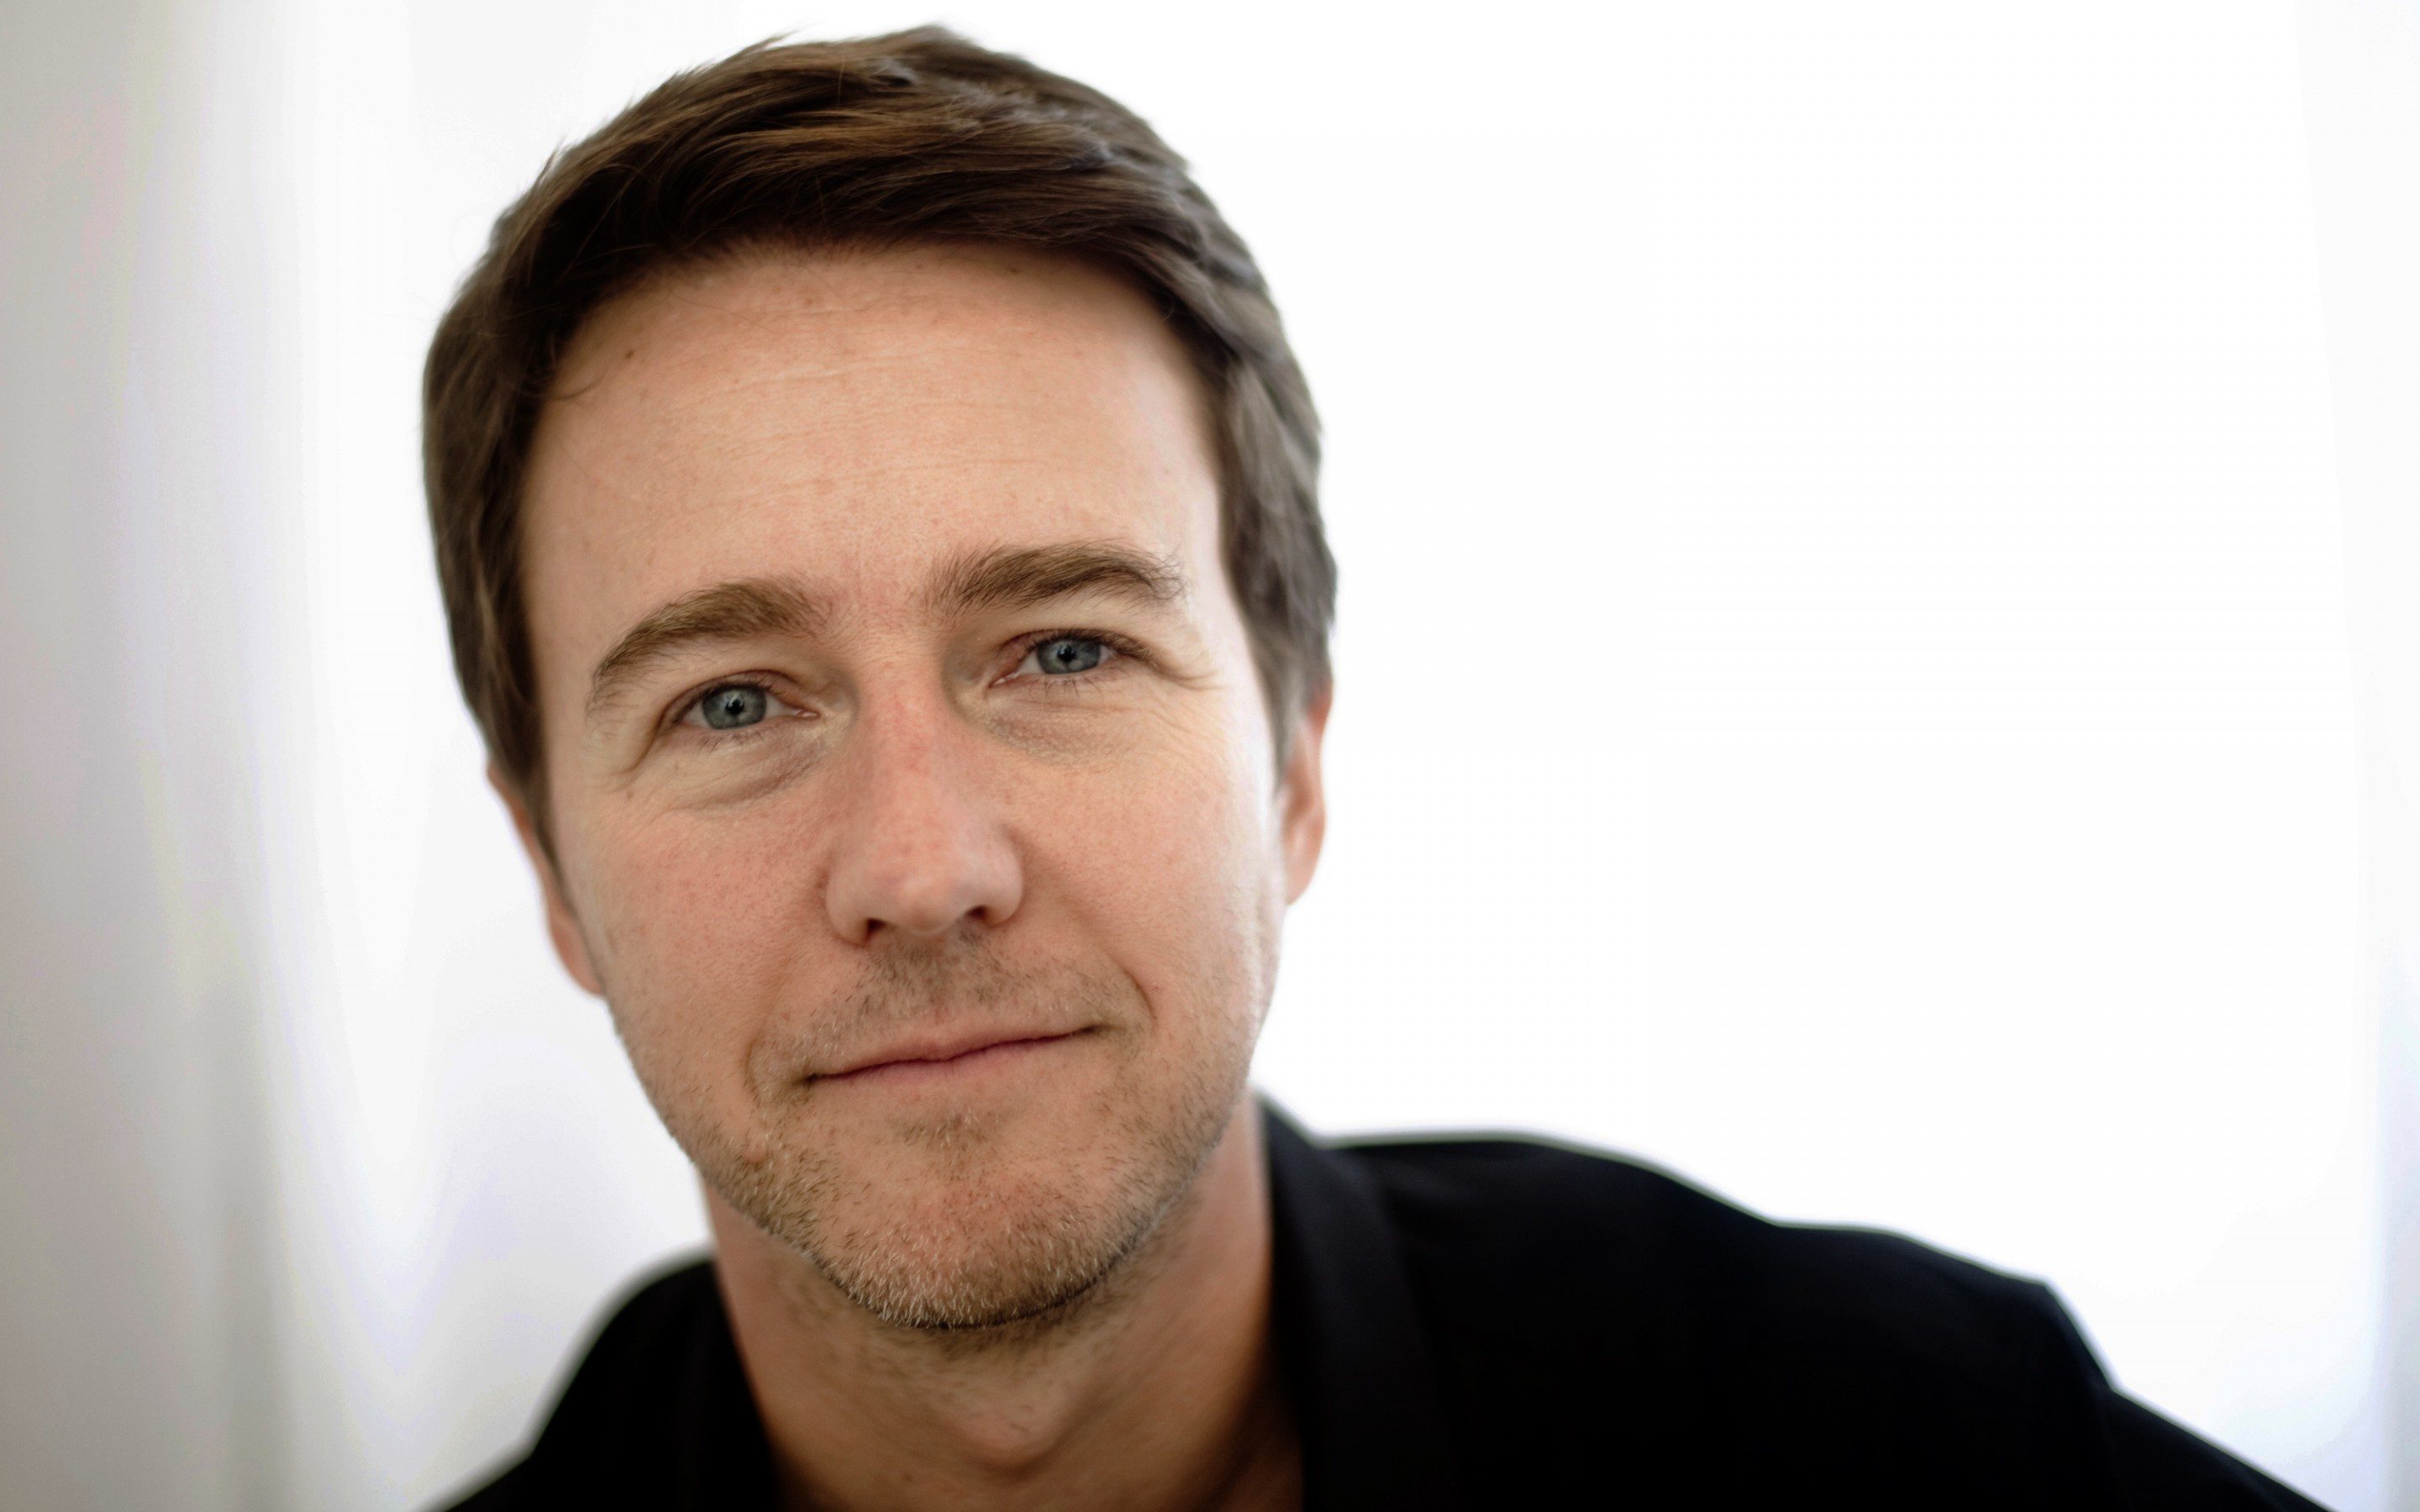 Edward Norton HD Wallpaper Background Image 2880x1800 ID 2880x1800